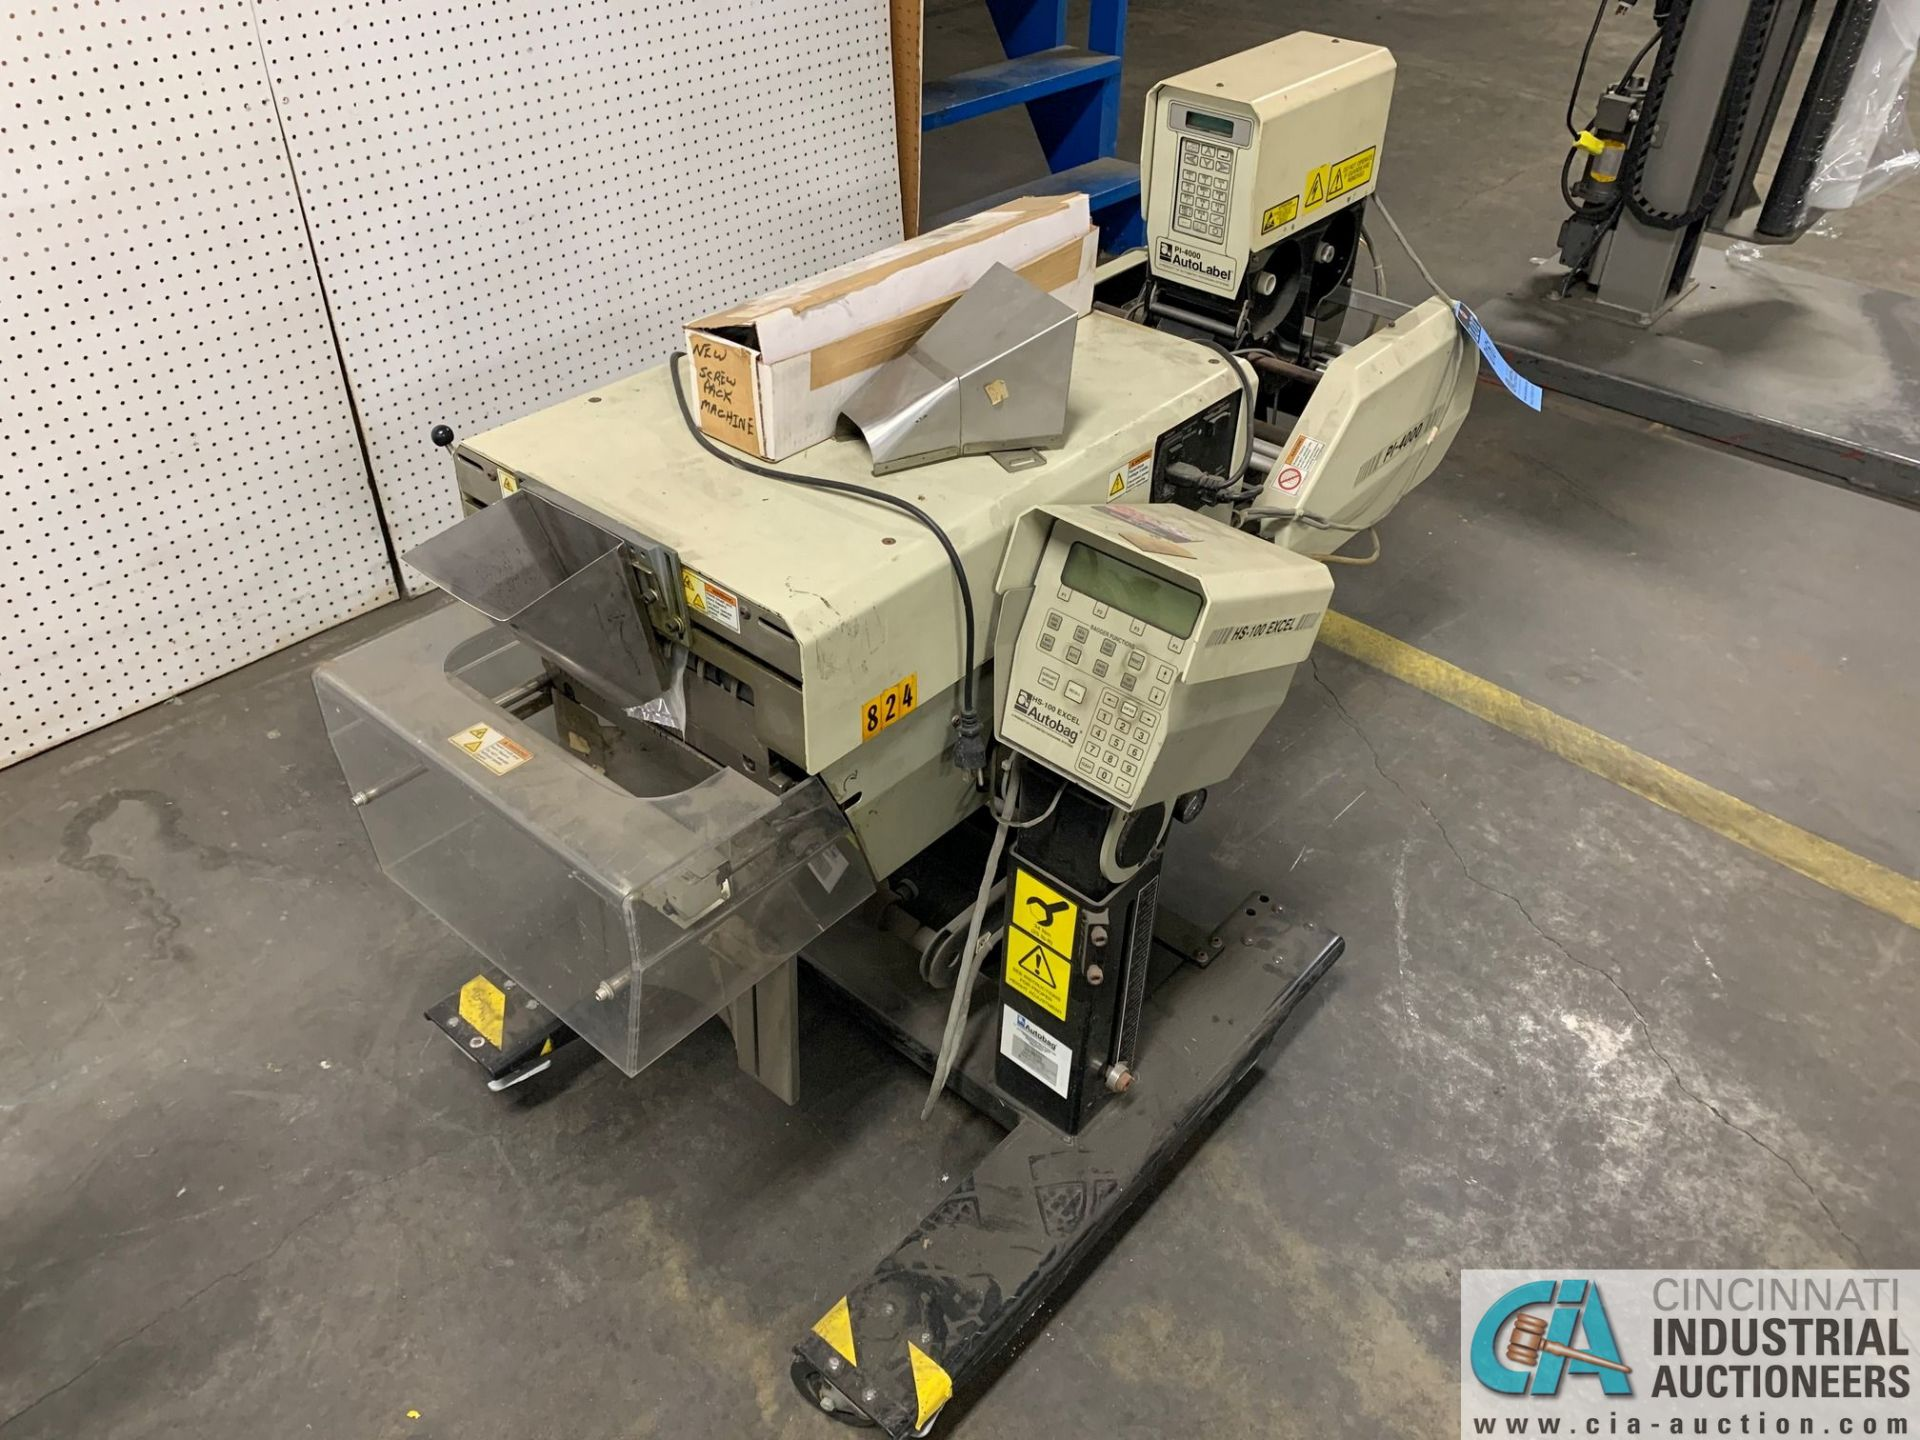 AUTOBAG MODEL HS-100 EXCEL POLY BAGGING MACHINE; S/N 2072896019, WITH P1-4000 AUTO LABEL MACHINE (